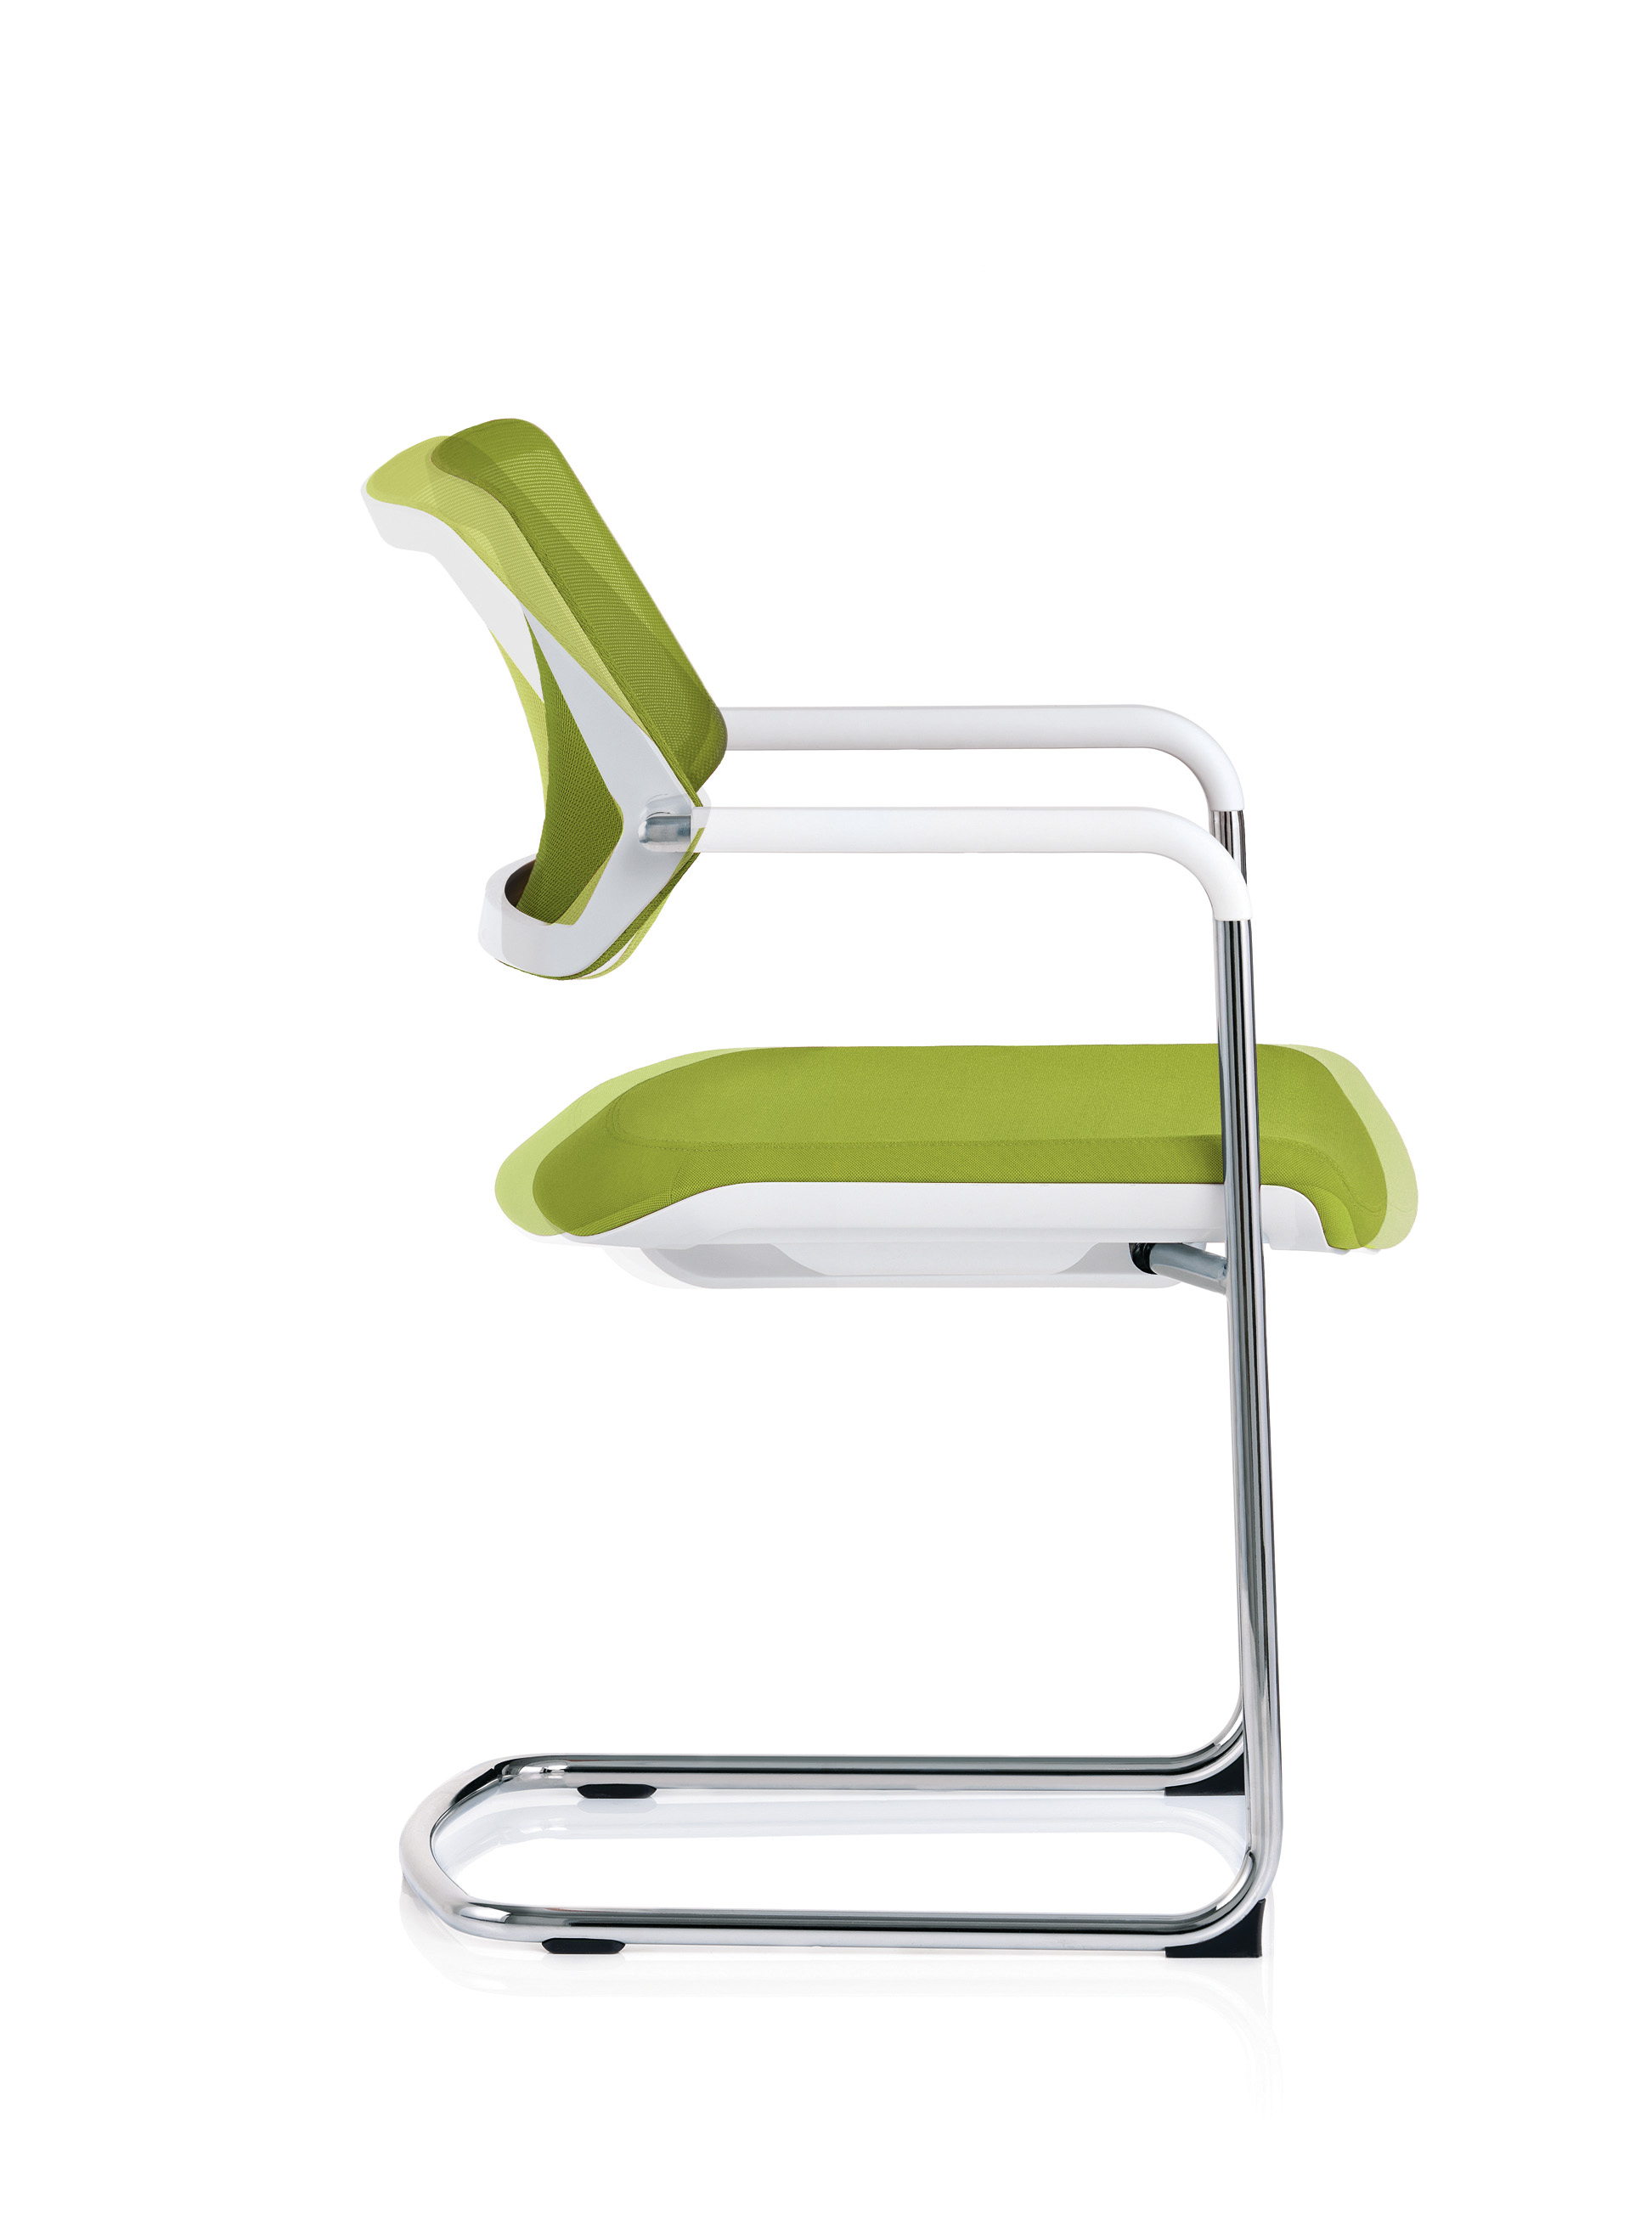 QiVi sled chair showing pivoting back and gliding seat movement